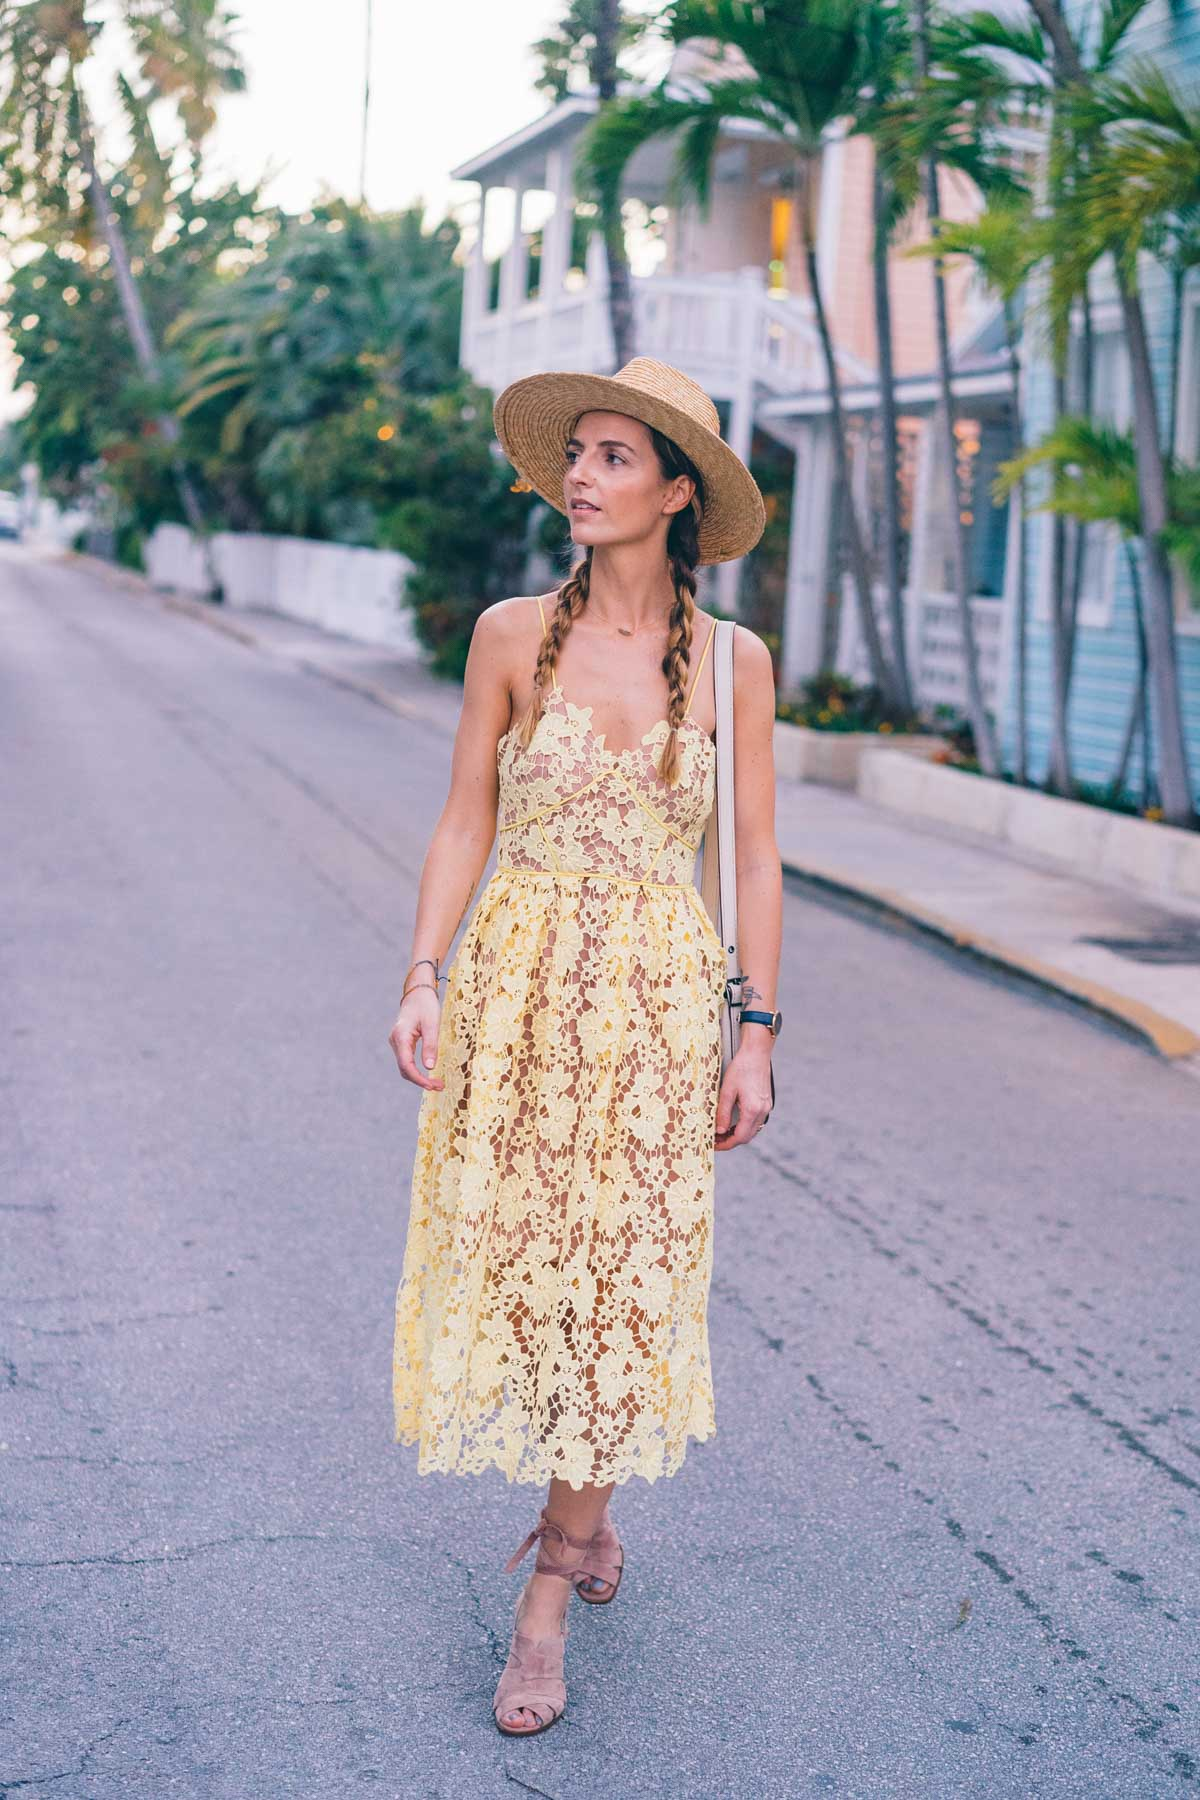 Jess Kirby wears a yellow lace midi dress and blush lace up heels in Key West